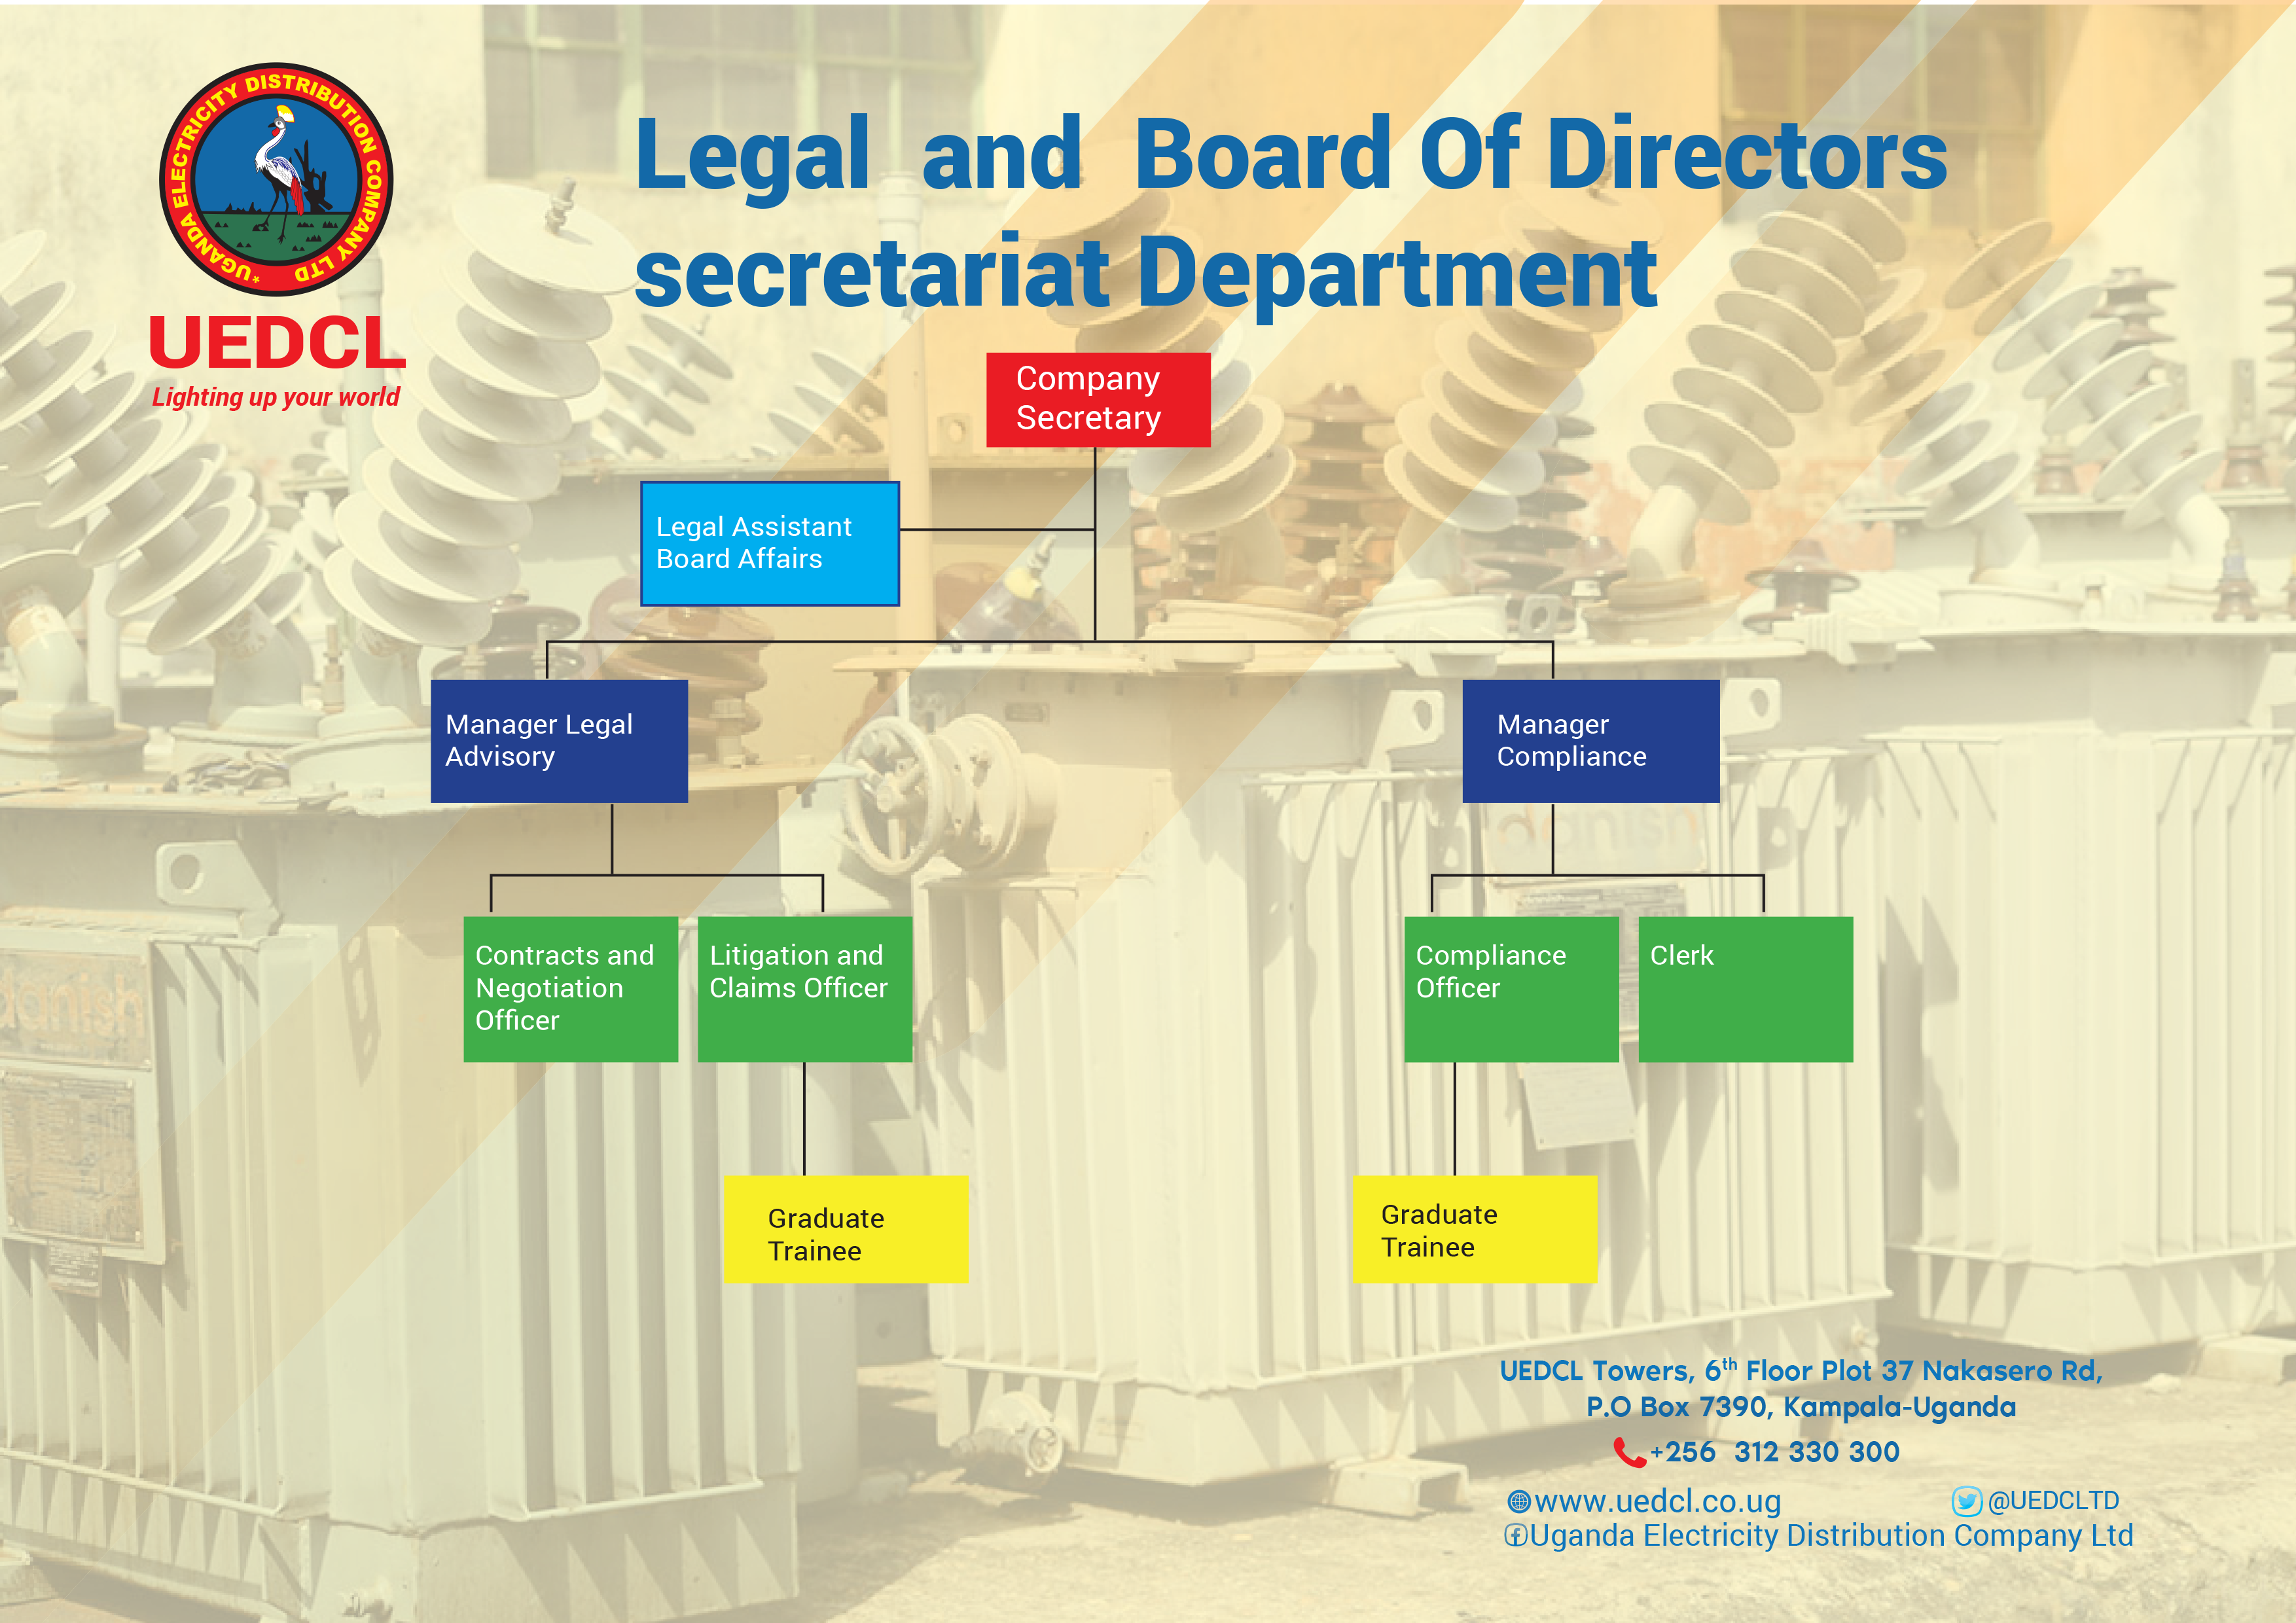 UEDCL Legal and Board of directors secretariat